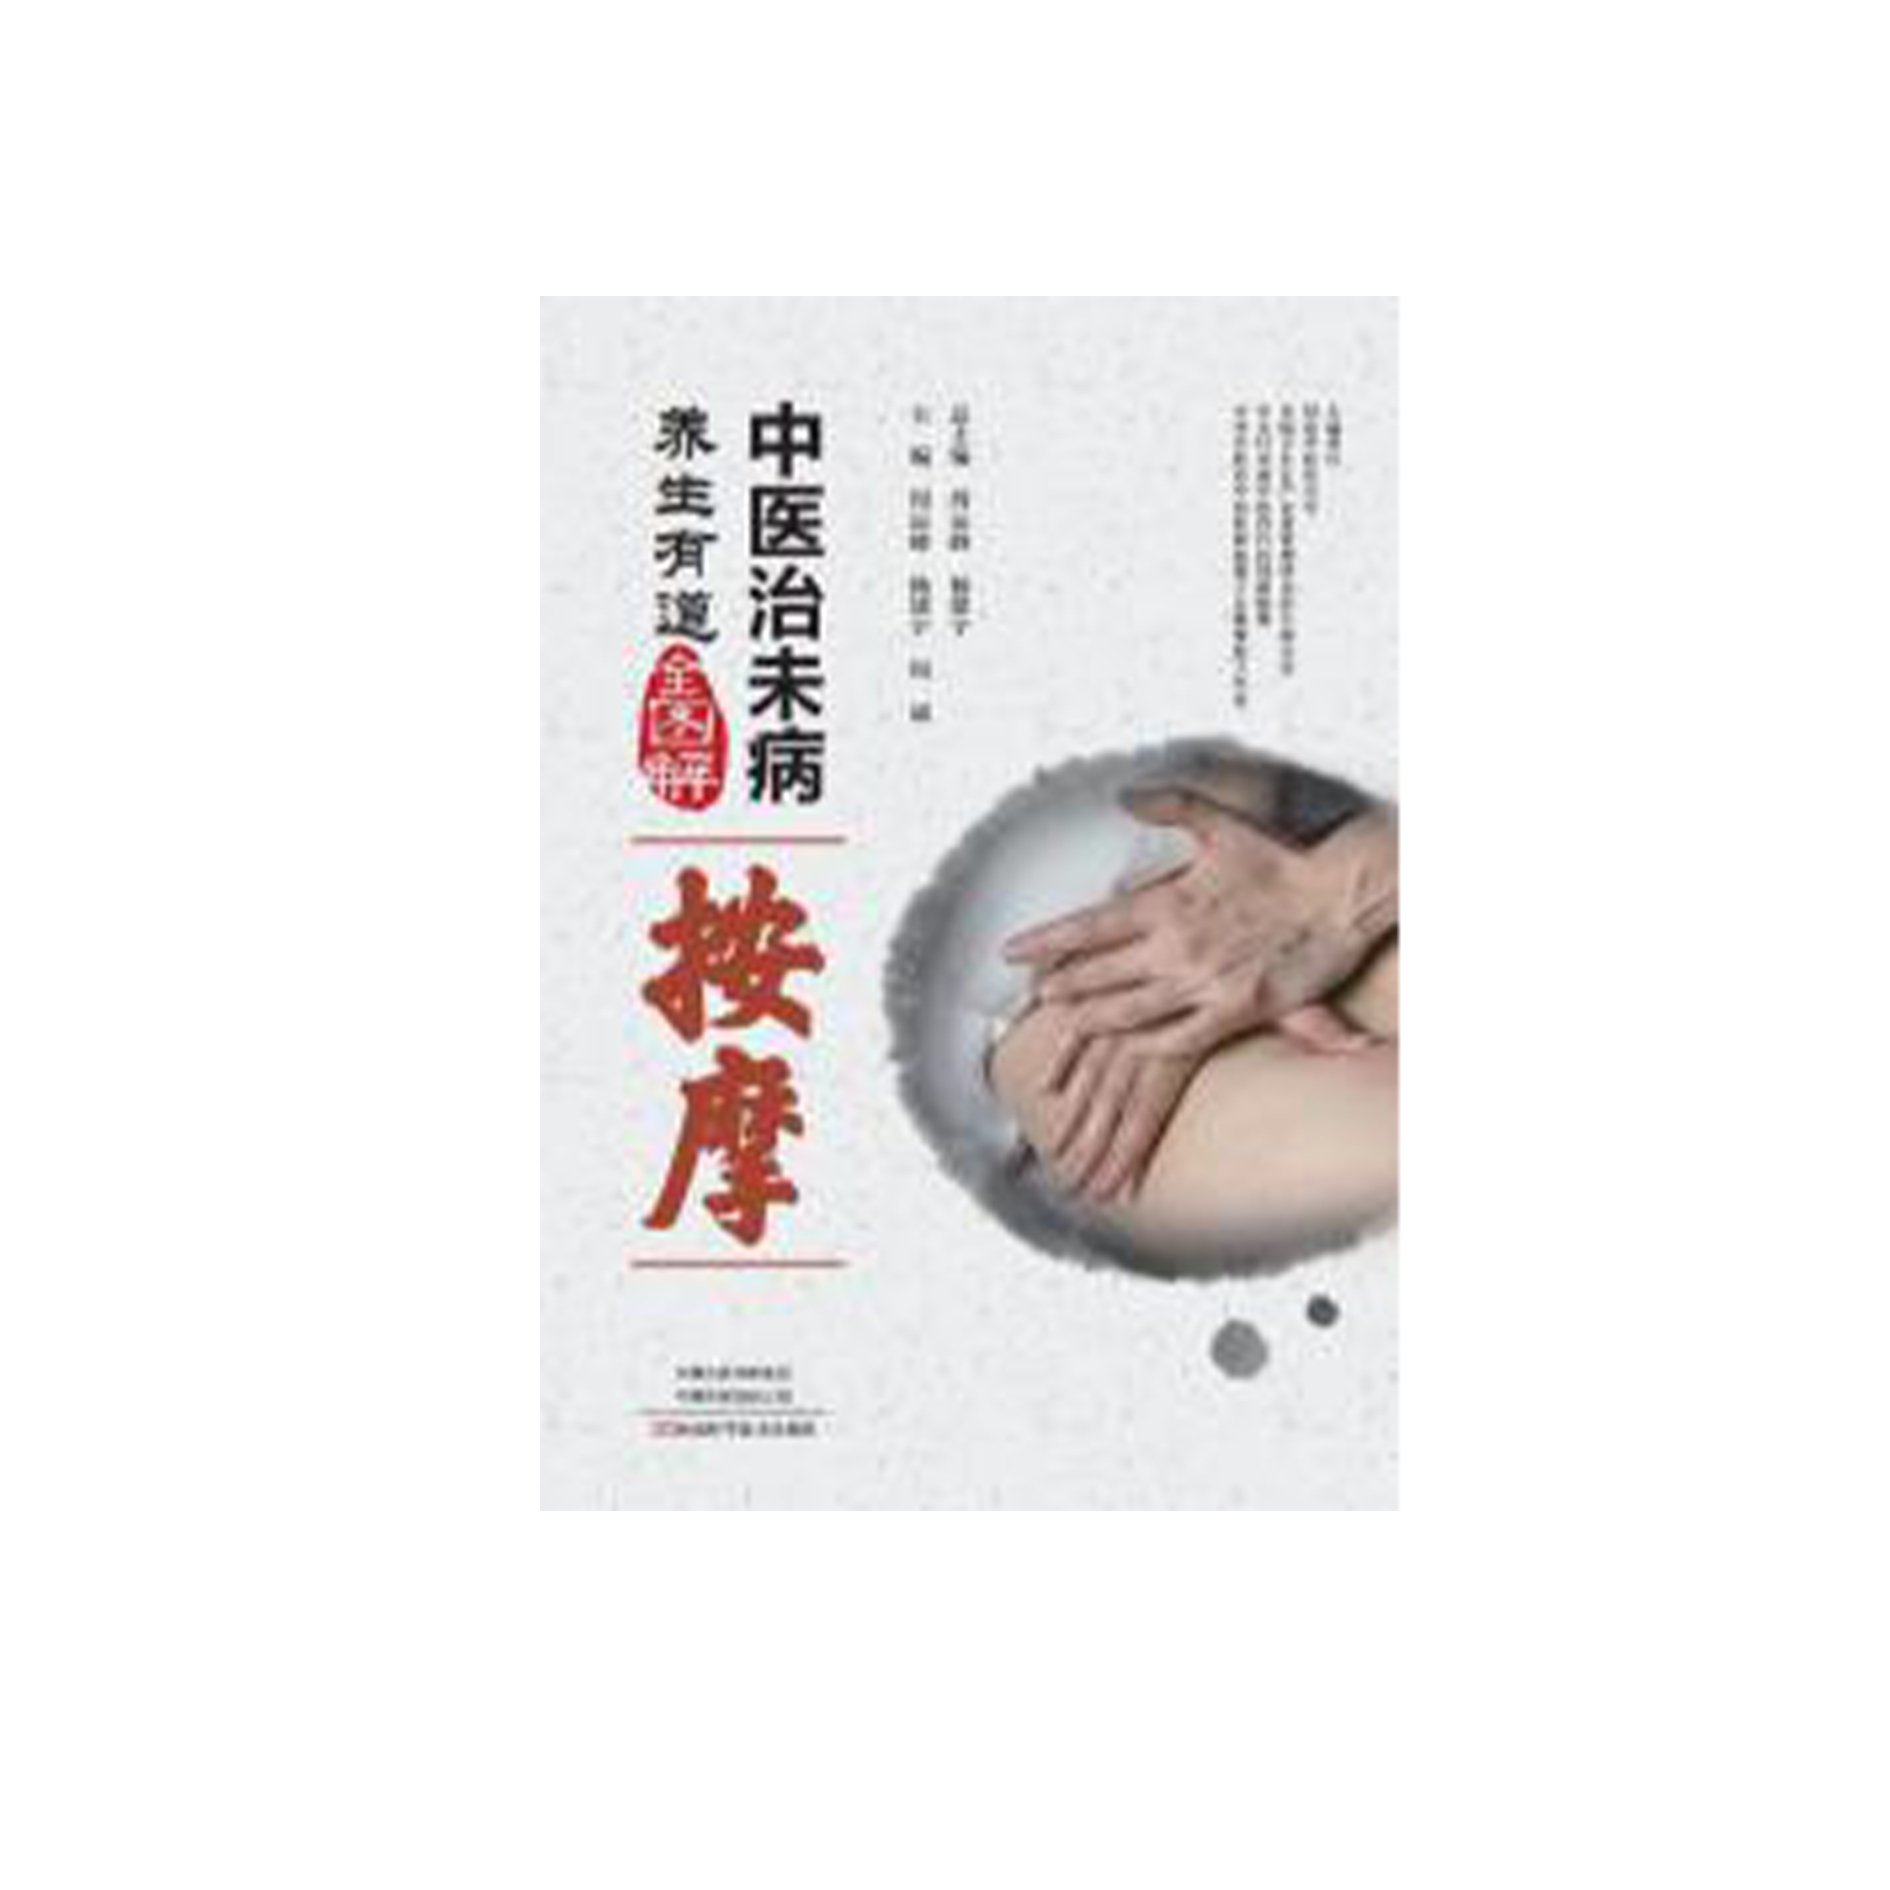 TCM Preventive Treatment for Disease-Massage